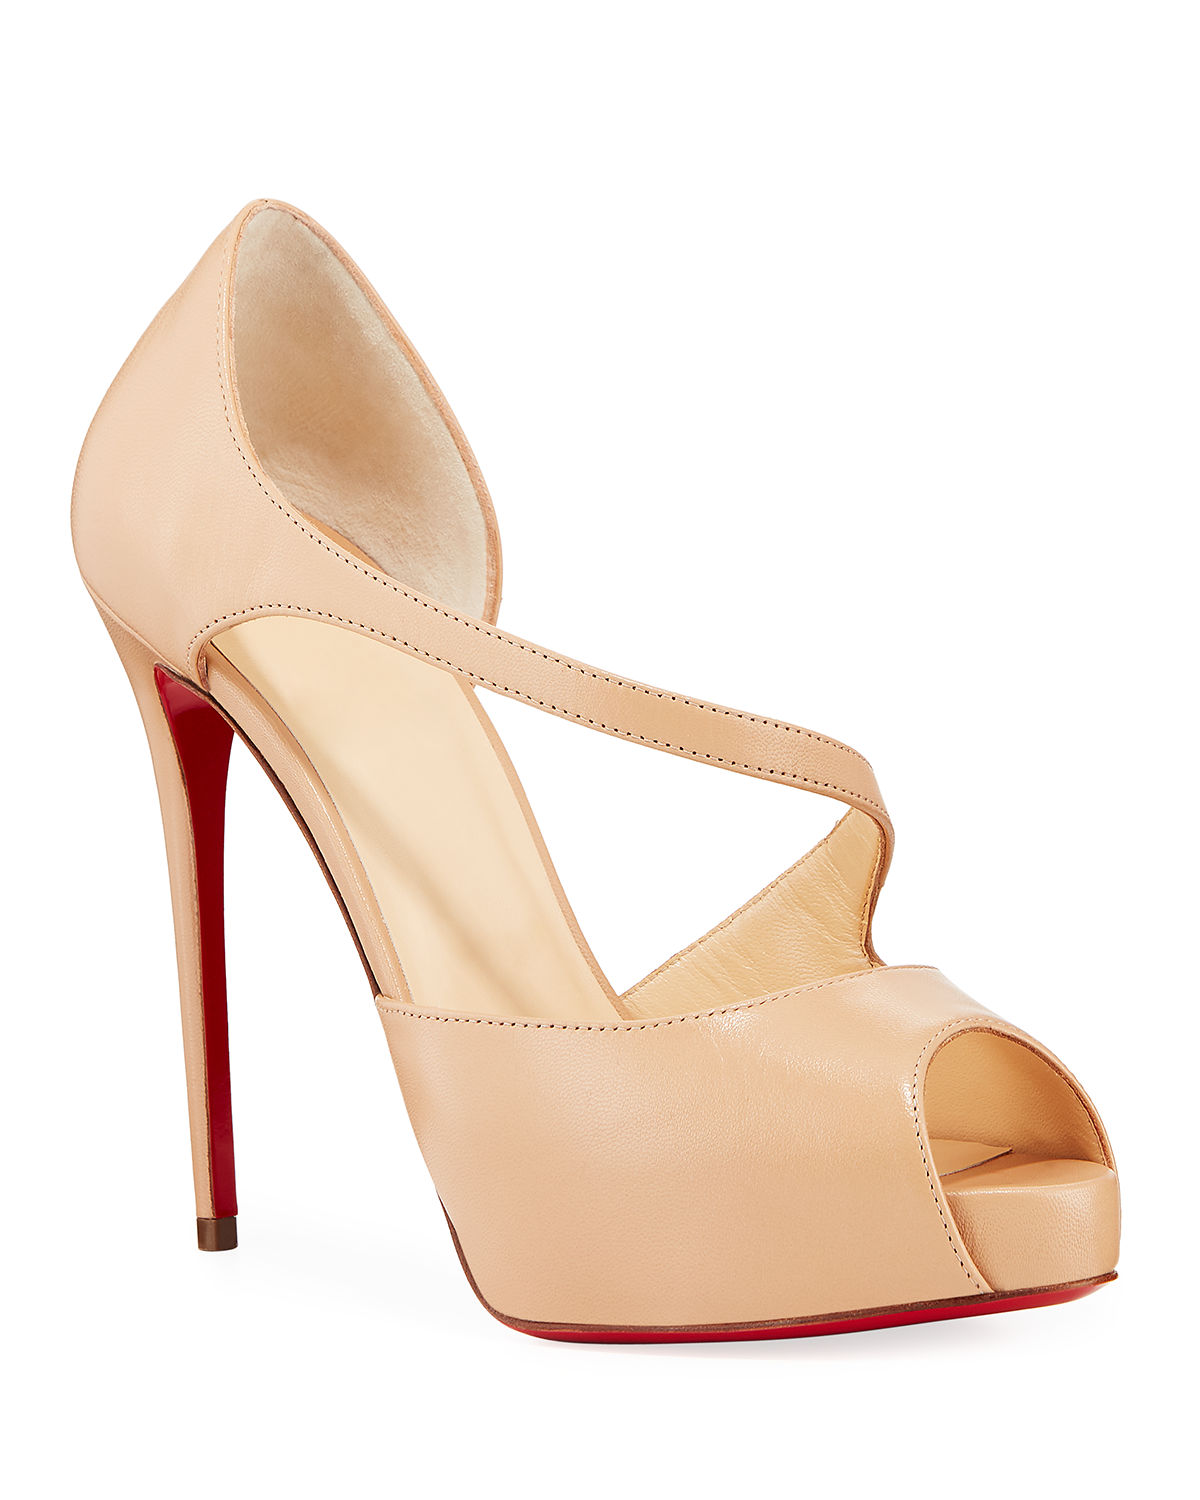 342c653137d Christian Louboutin Catchy Two Red Sole Pumps